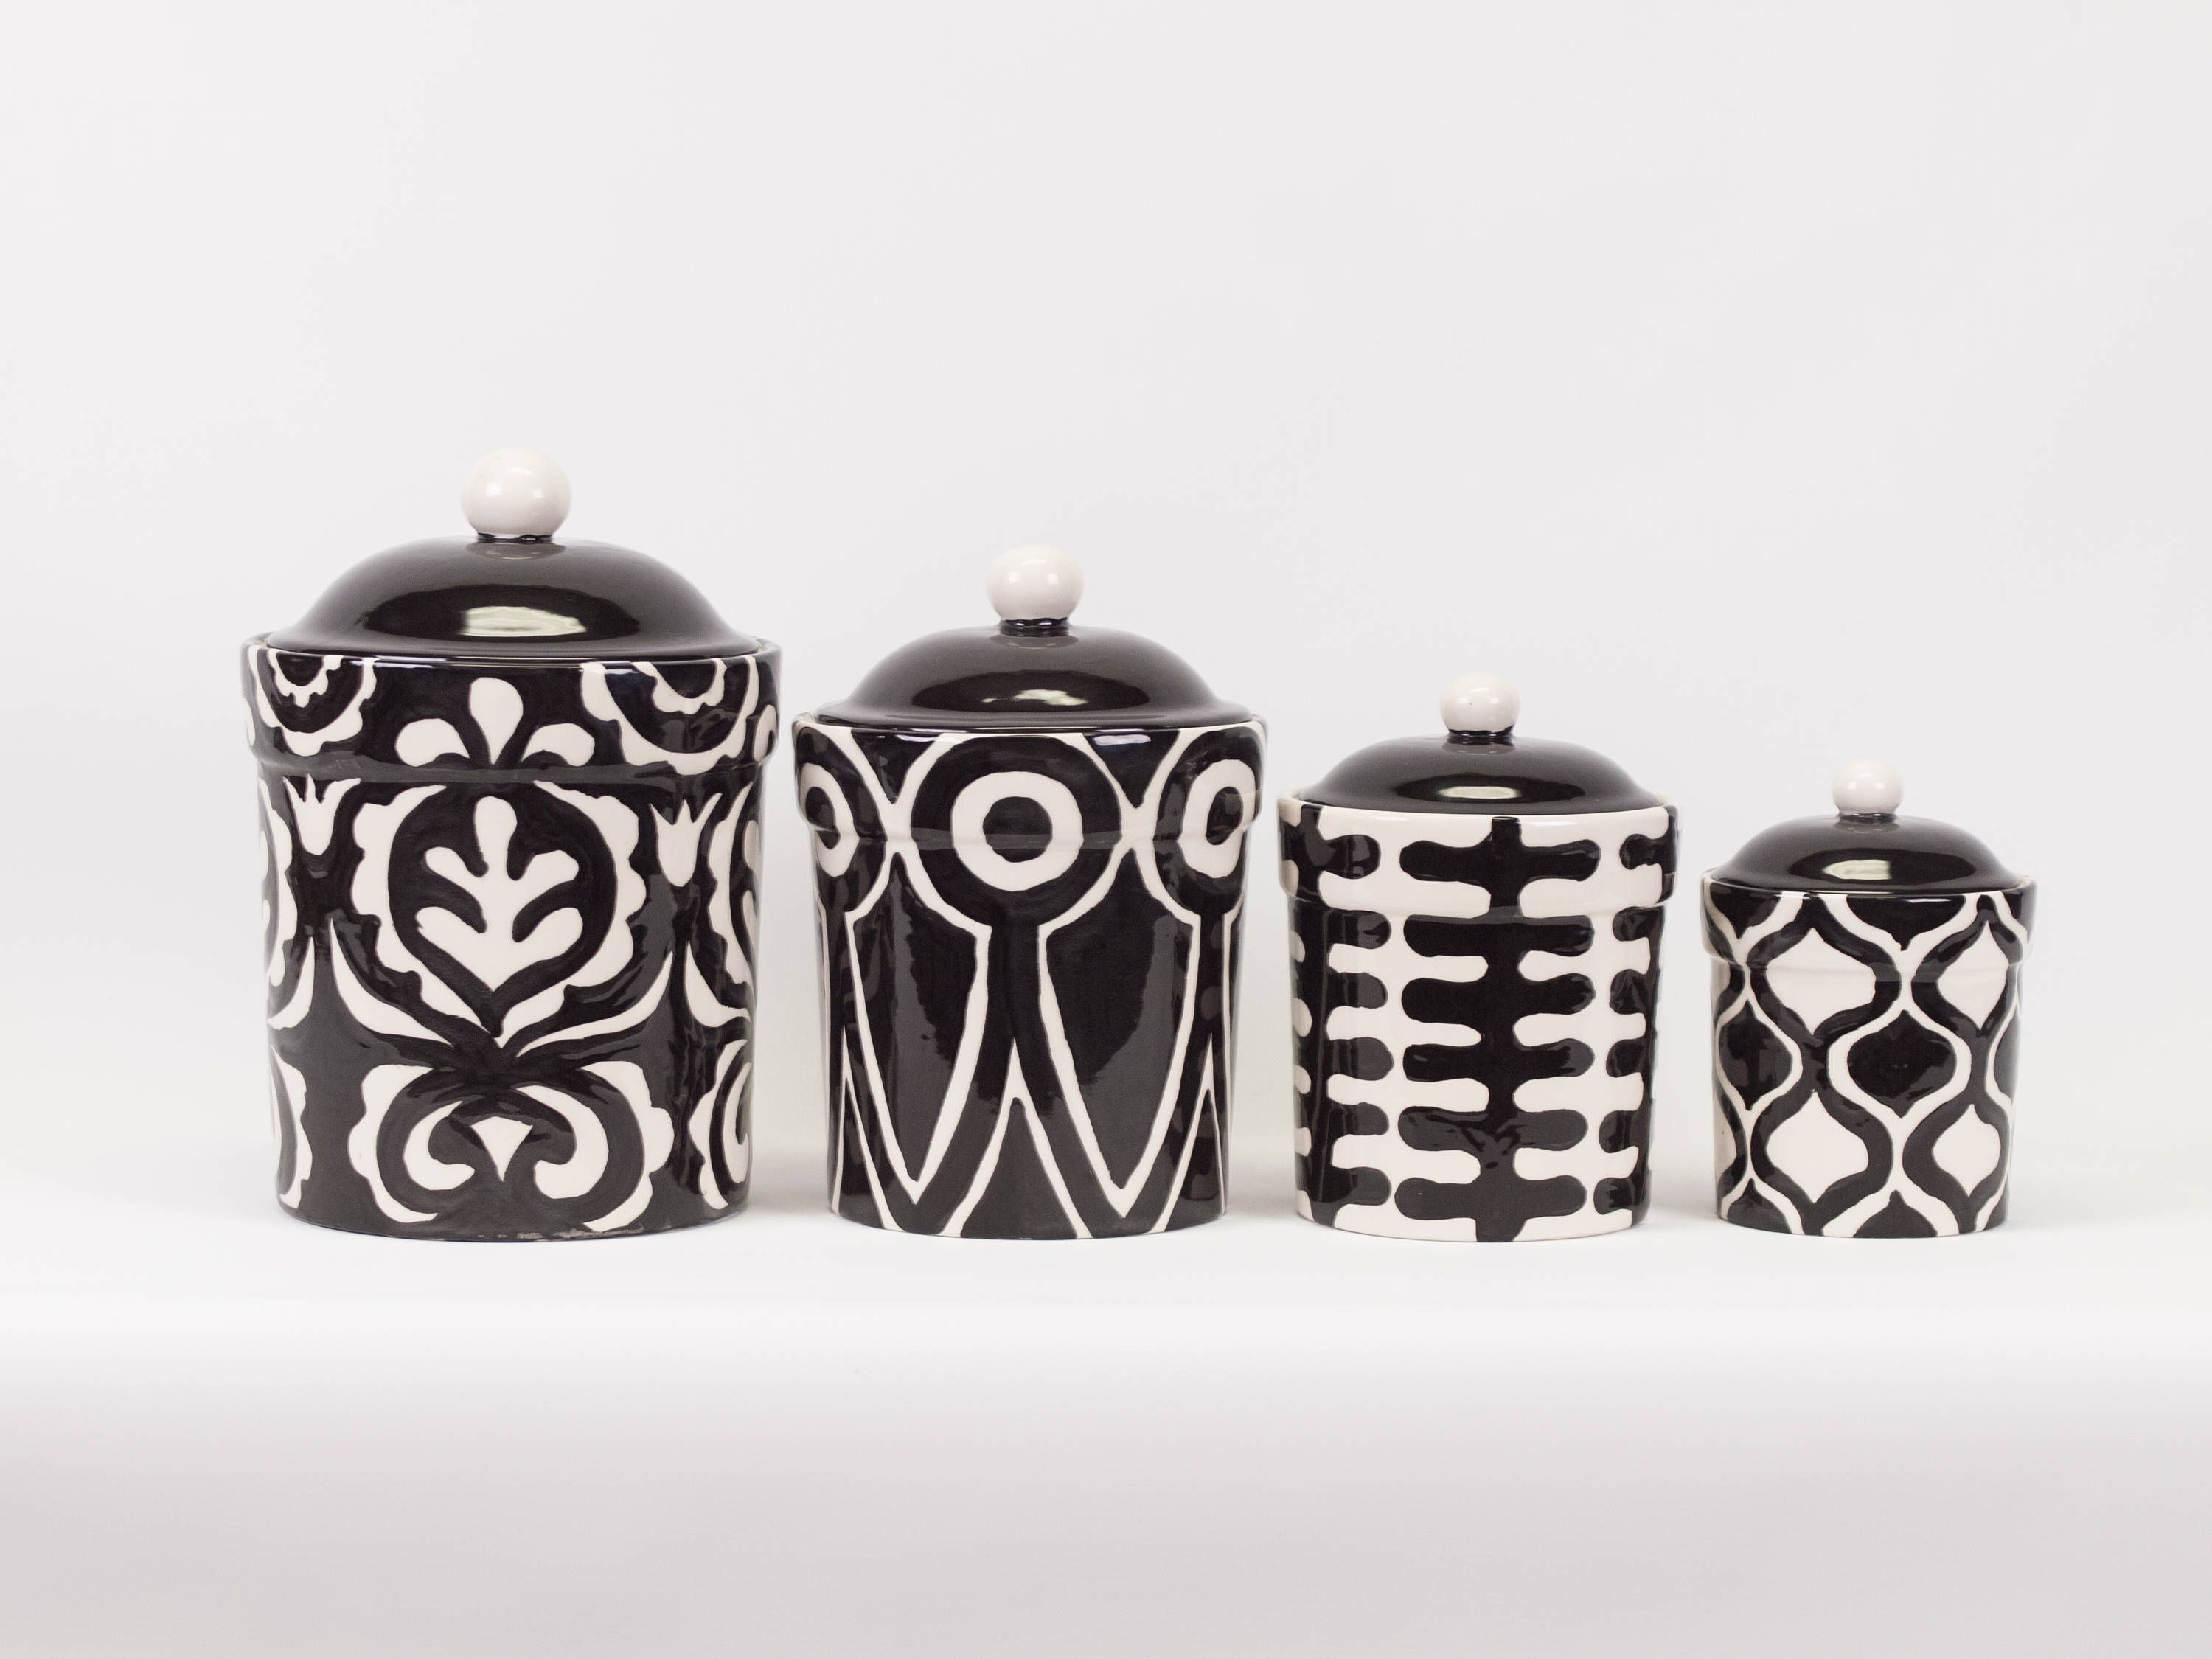 Kitchen Canister Set Canister Set Kitchen Canisters Ceramic Canister ...